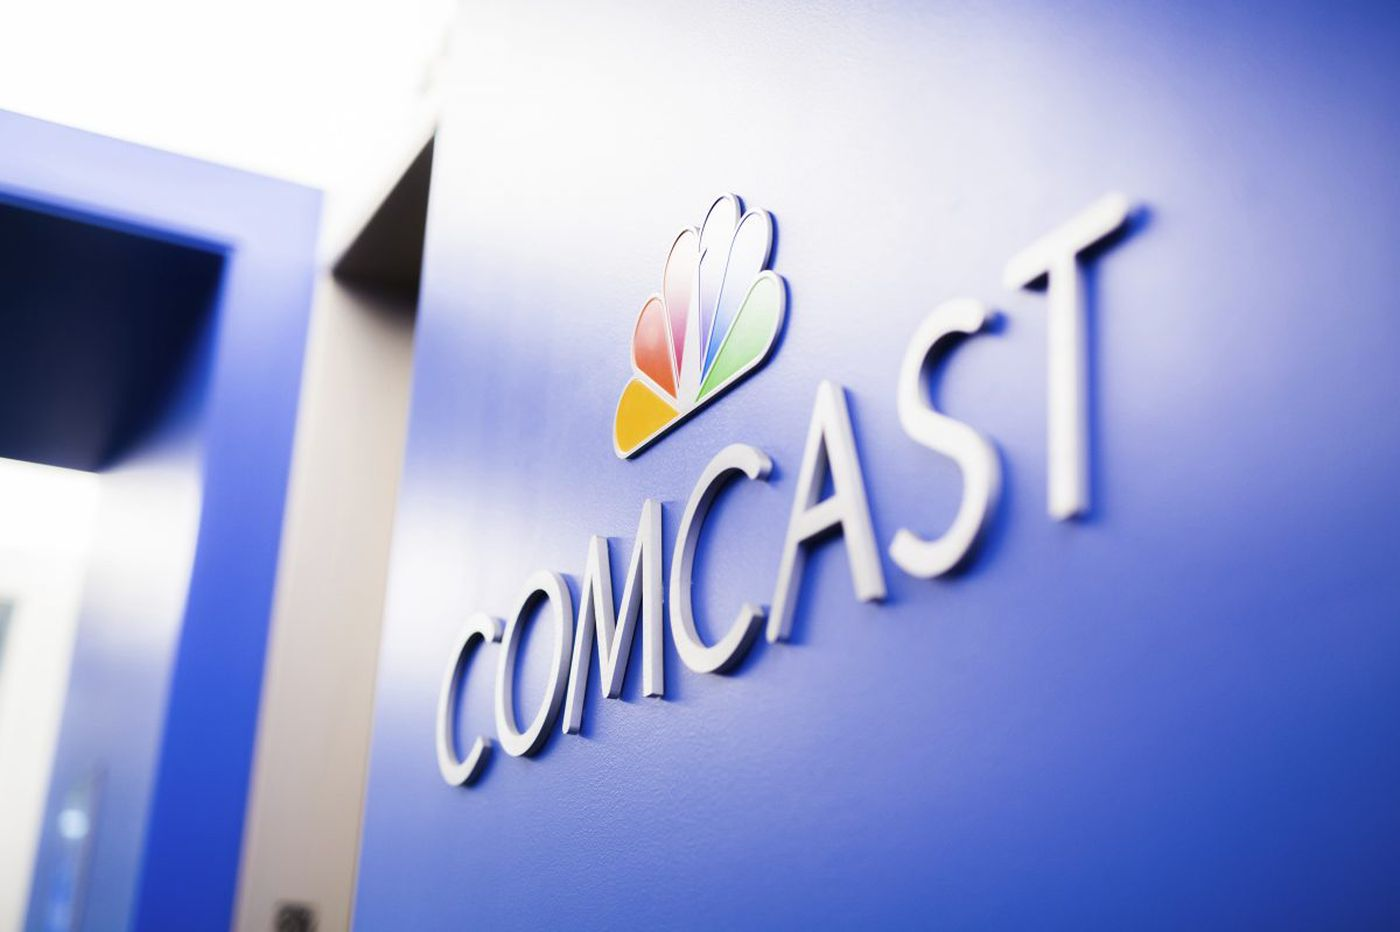 Comcast names its streaming service Peacock, the entire internet responds predictably